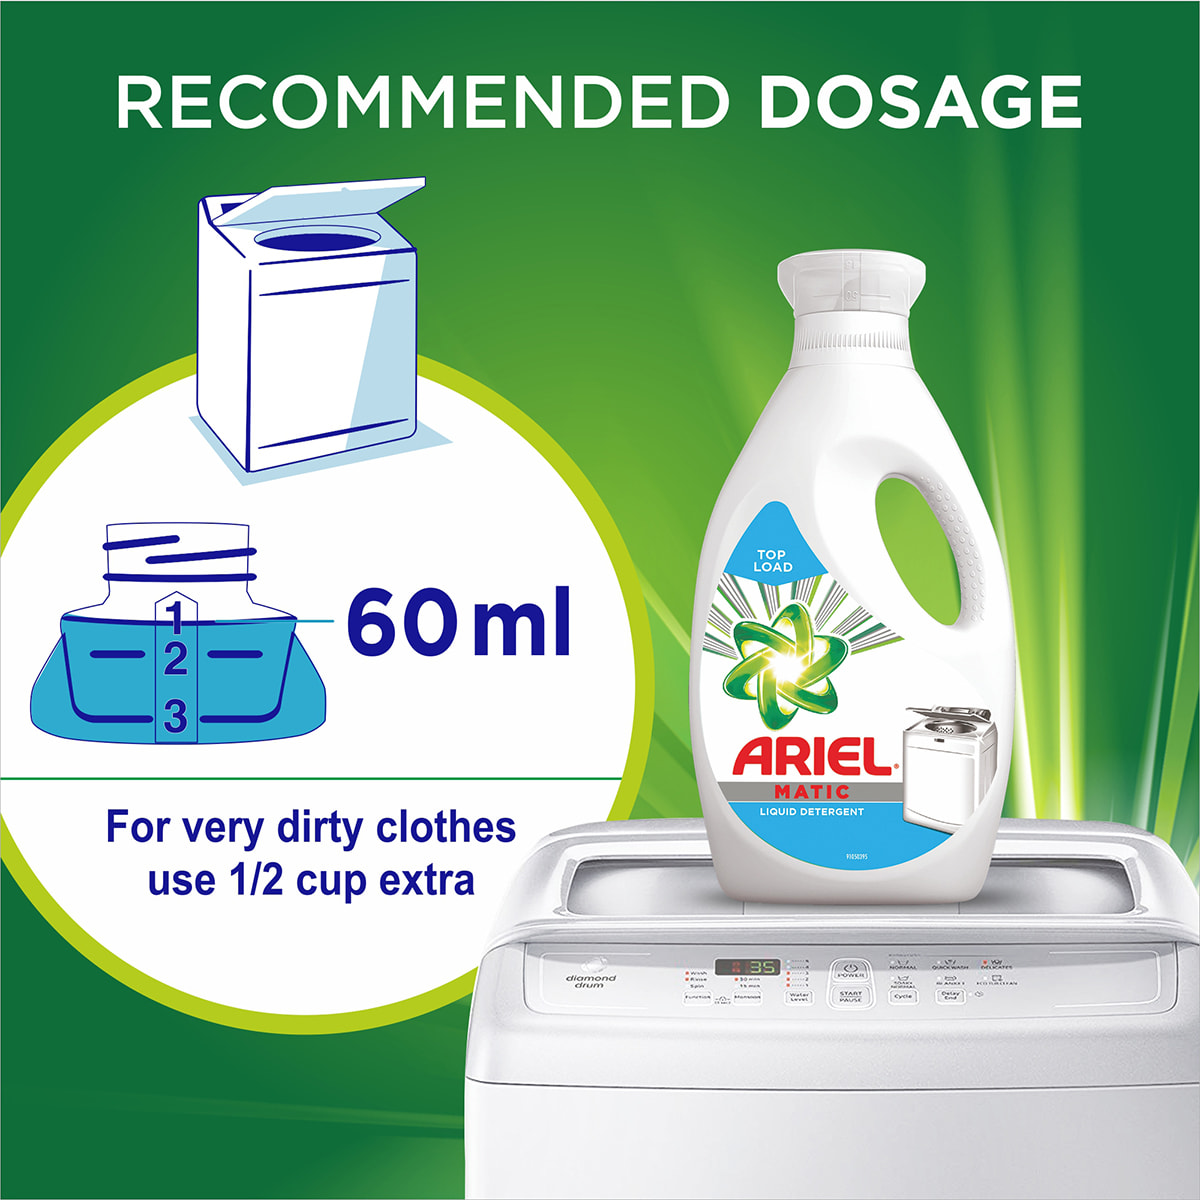 60 ml from the Ariel Matic Top Loader Liquid is the recommended dosage, for very dirty clothes use 1/2 cup extra